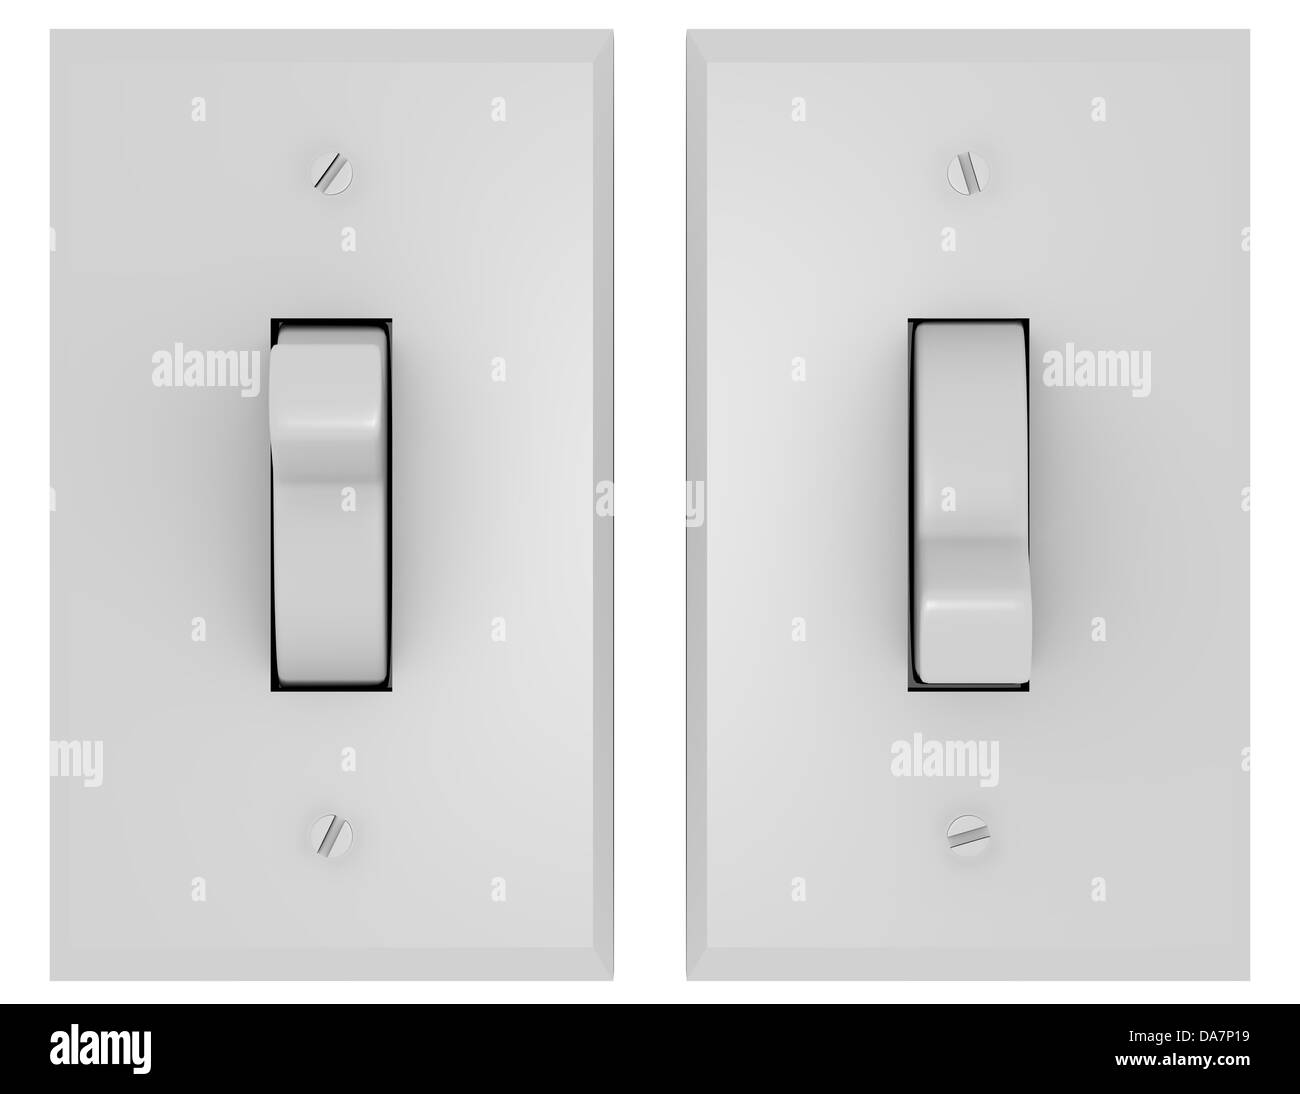 3d Render of a Pair of Light Switches - Stock Image